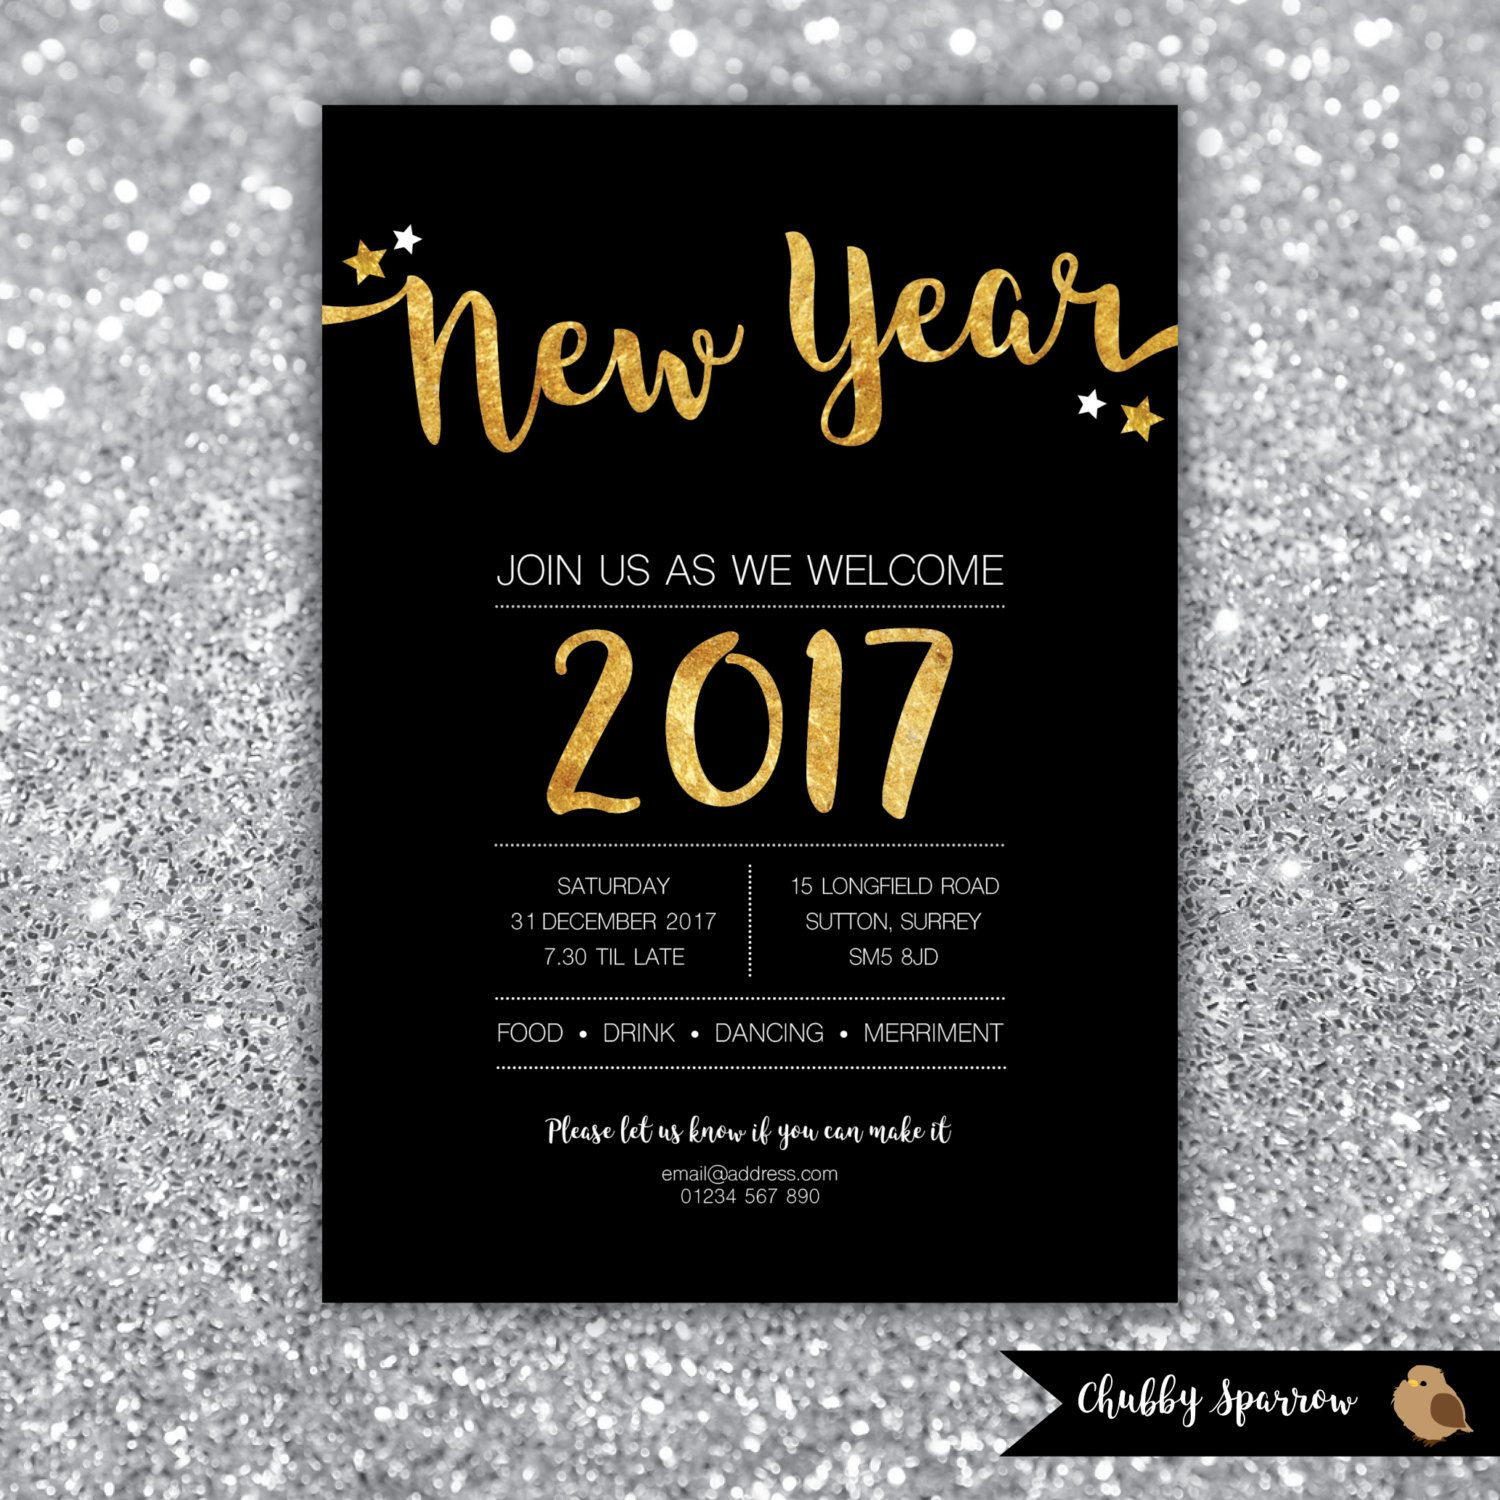 New Year's Eve Party, 2018/2019 Invitation, Christmas